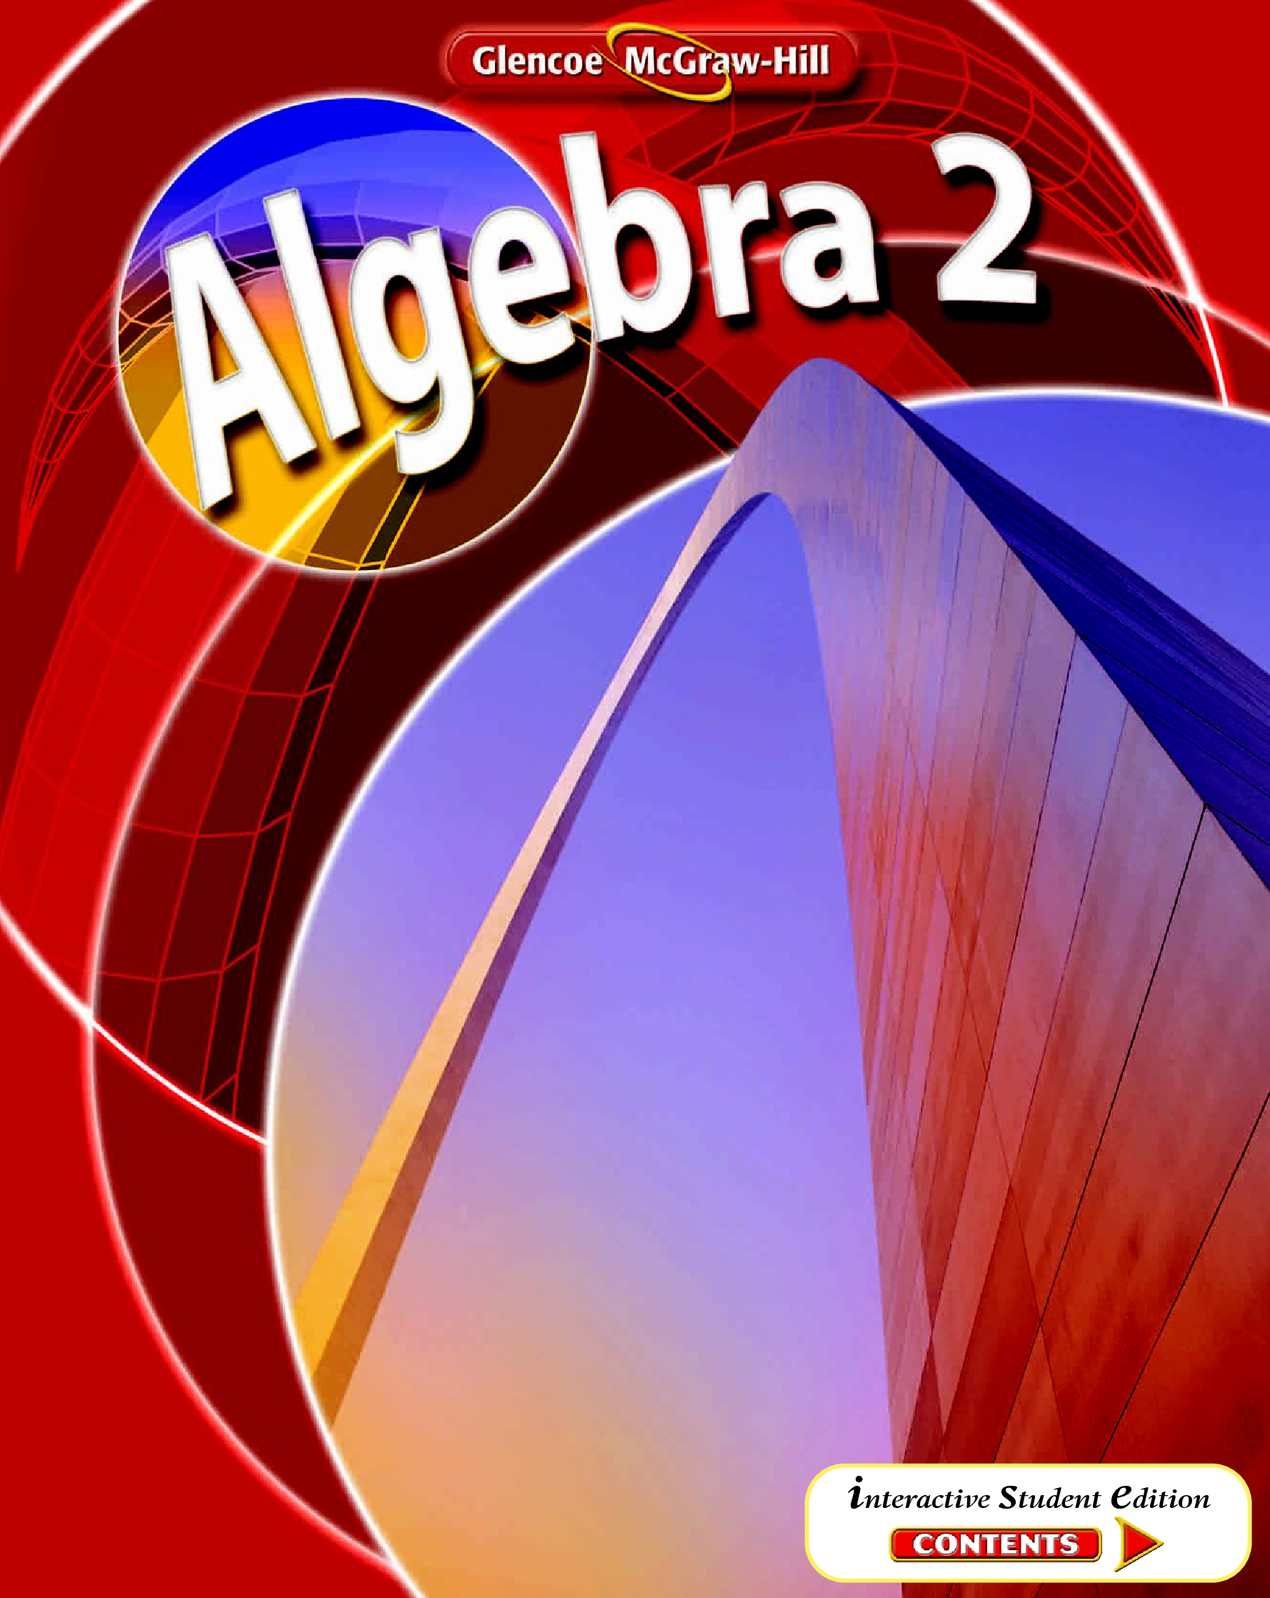 Worksheet Glencoe Mcgraw Hill Algebra 1 Worksheet Answers